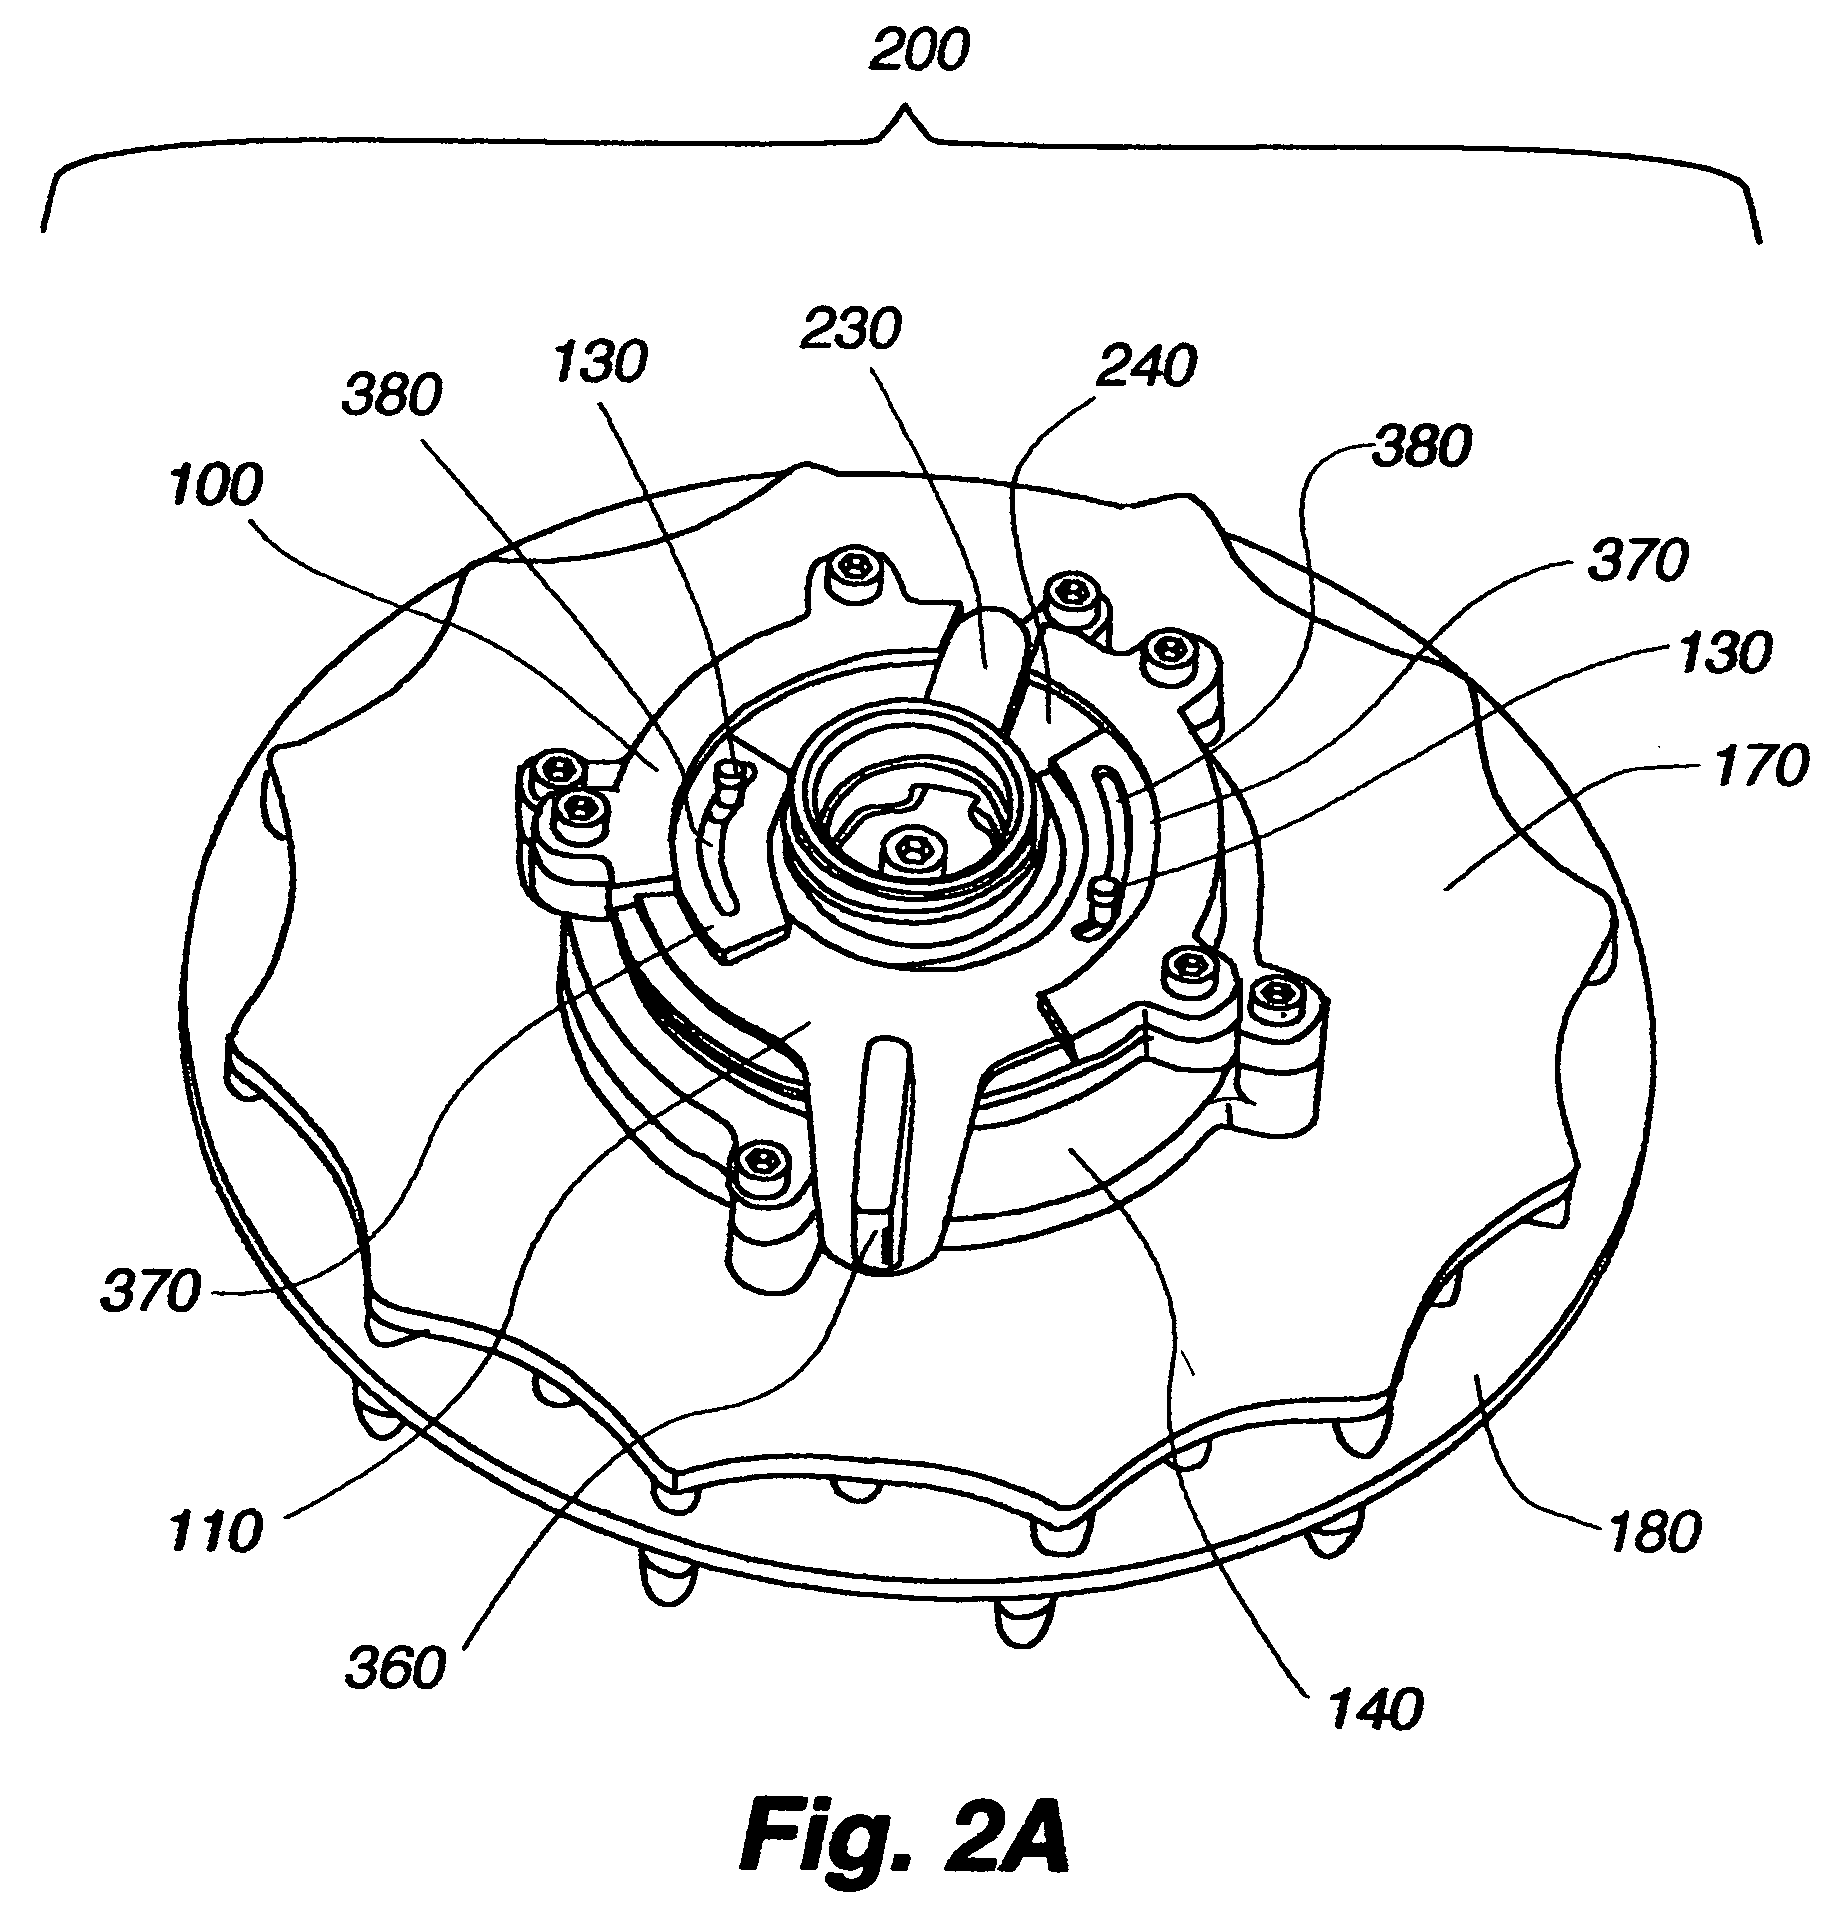 patent us7740186 drenching shower head patents 1951 Henry J Gasser patent drawing